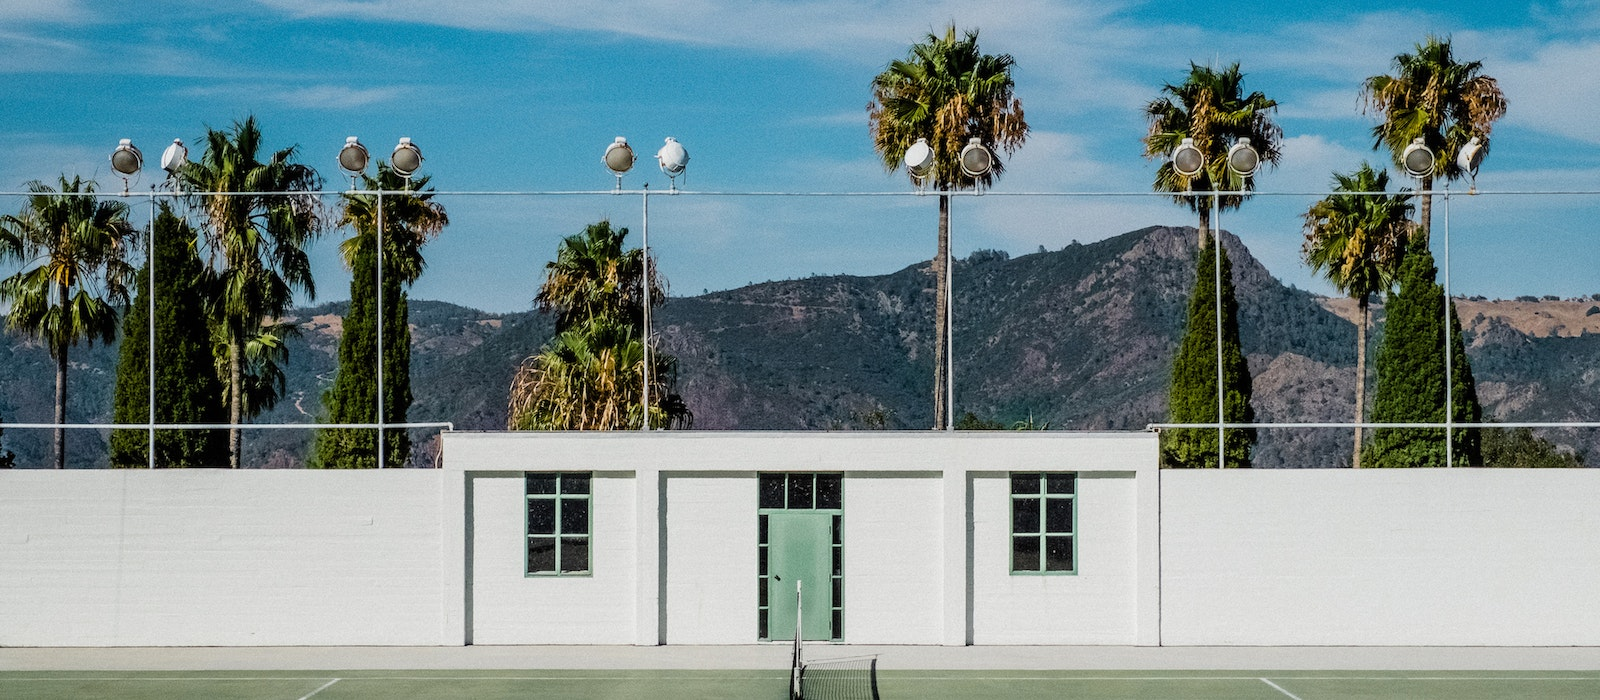 A Hearst Castle tennis court in San Luis Obispo County, California